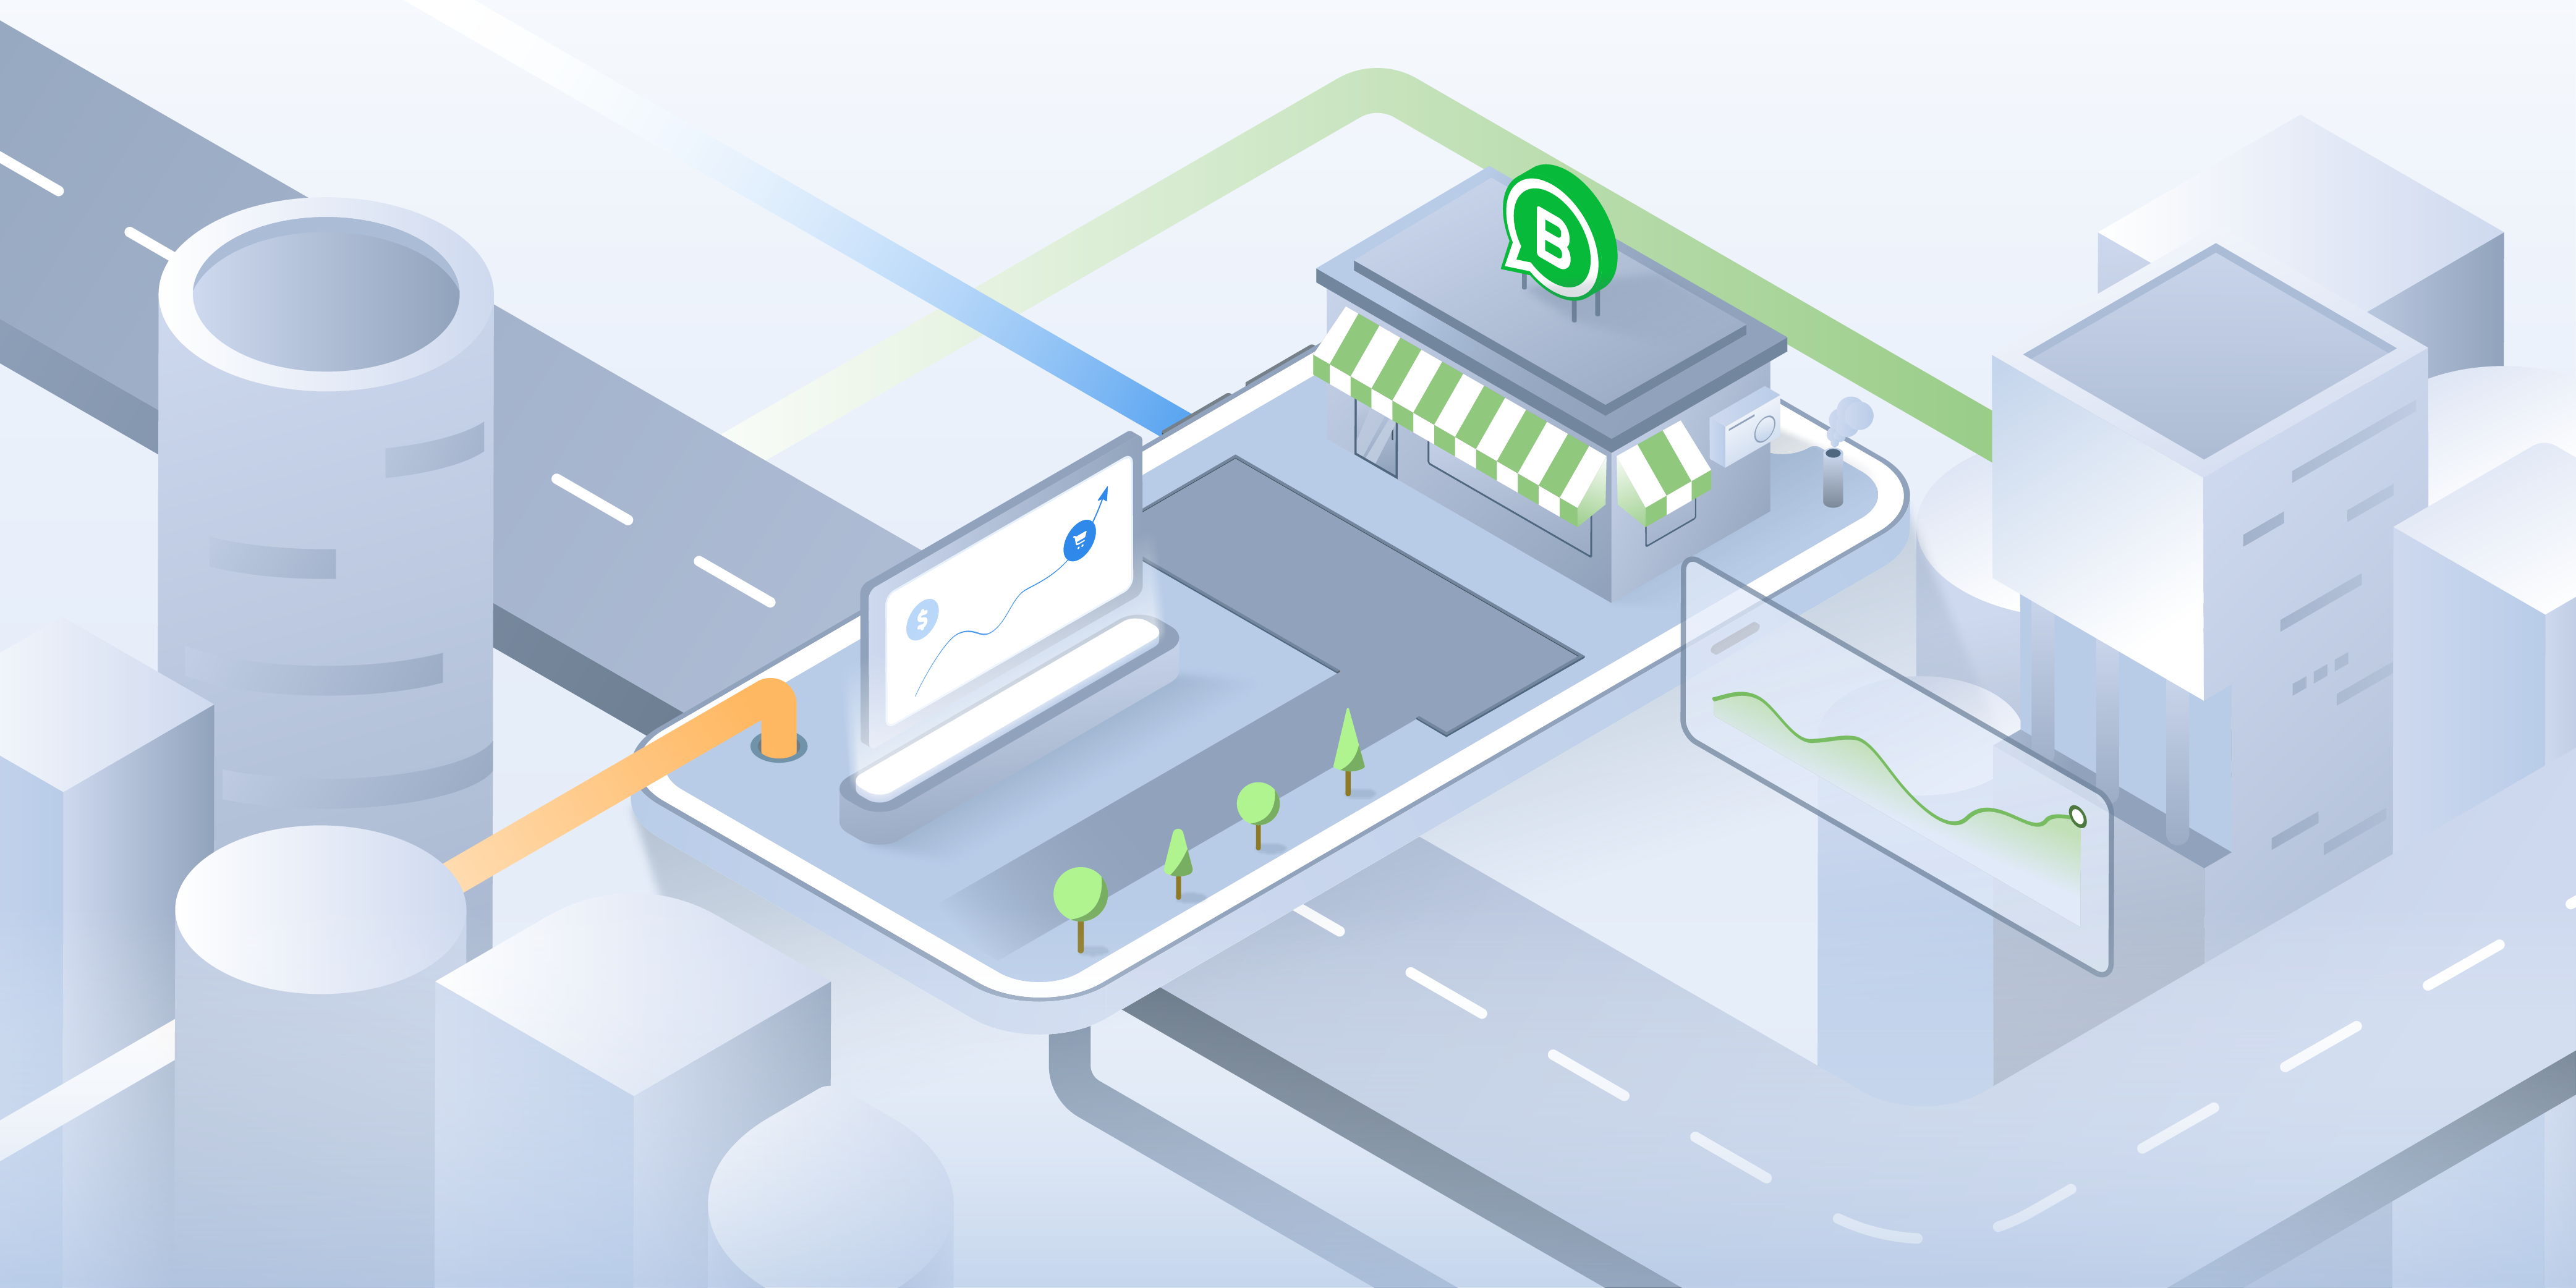 This article discusses what is WhatsApp Business API, including Kata.ai's solution, and its benefits in helping businesses interact with customers on WhatsApp.